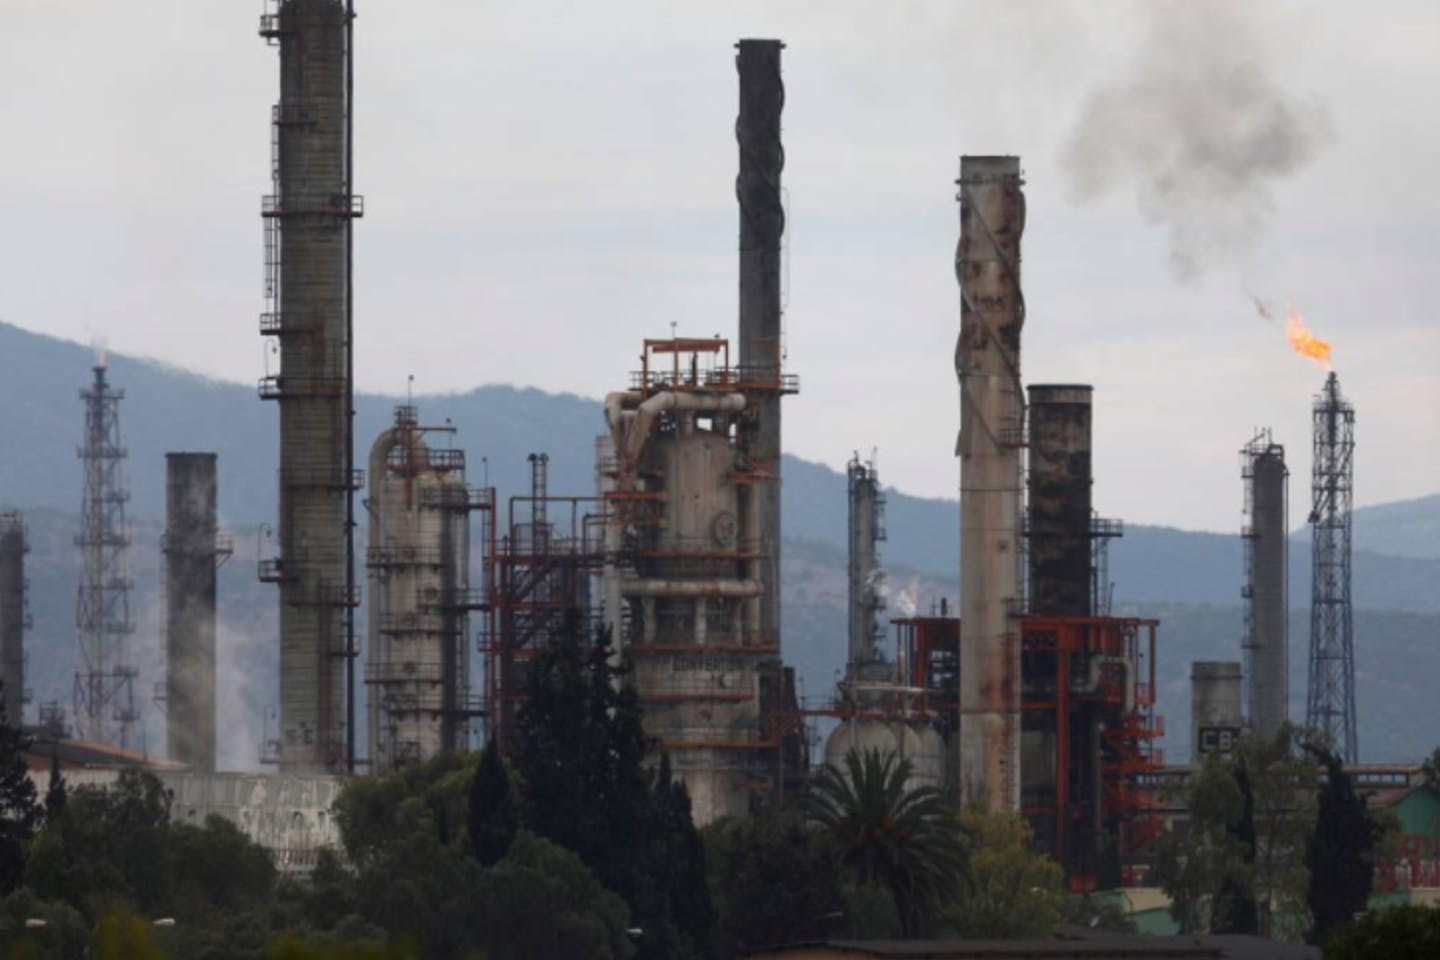 oil refinery in Tula de Allende, Mexico